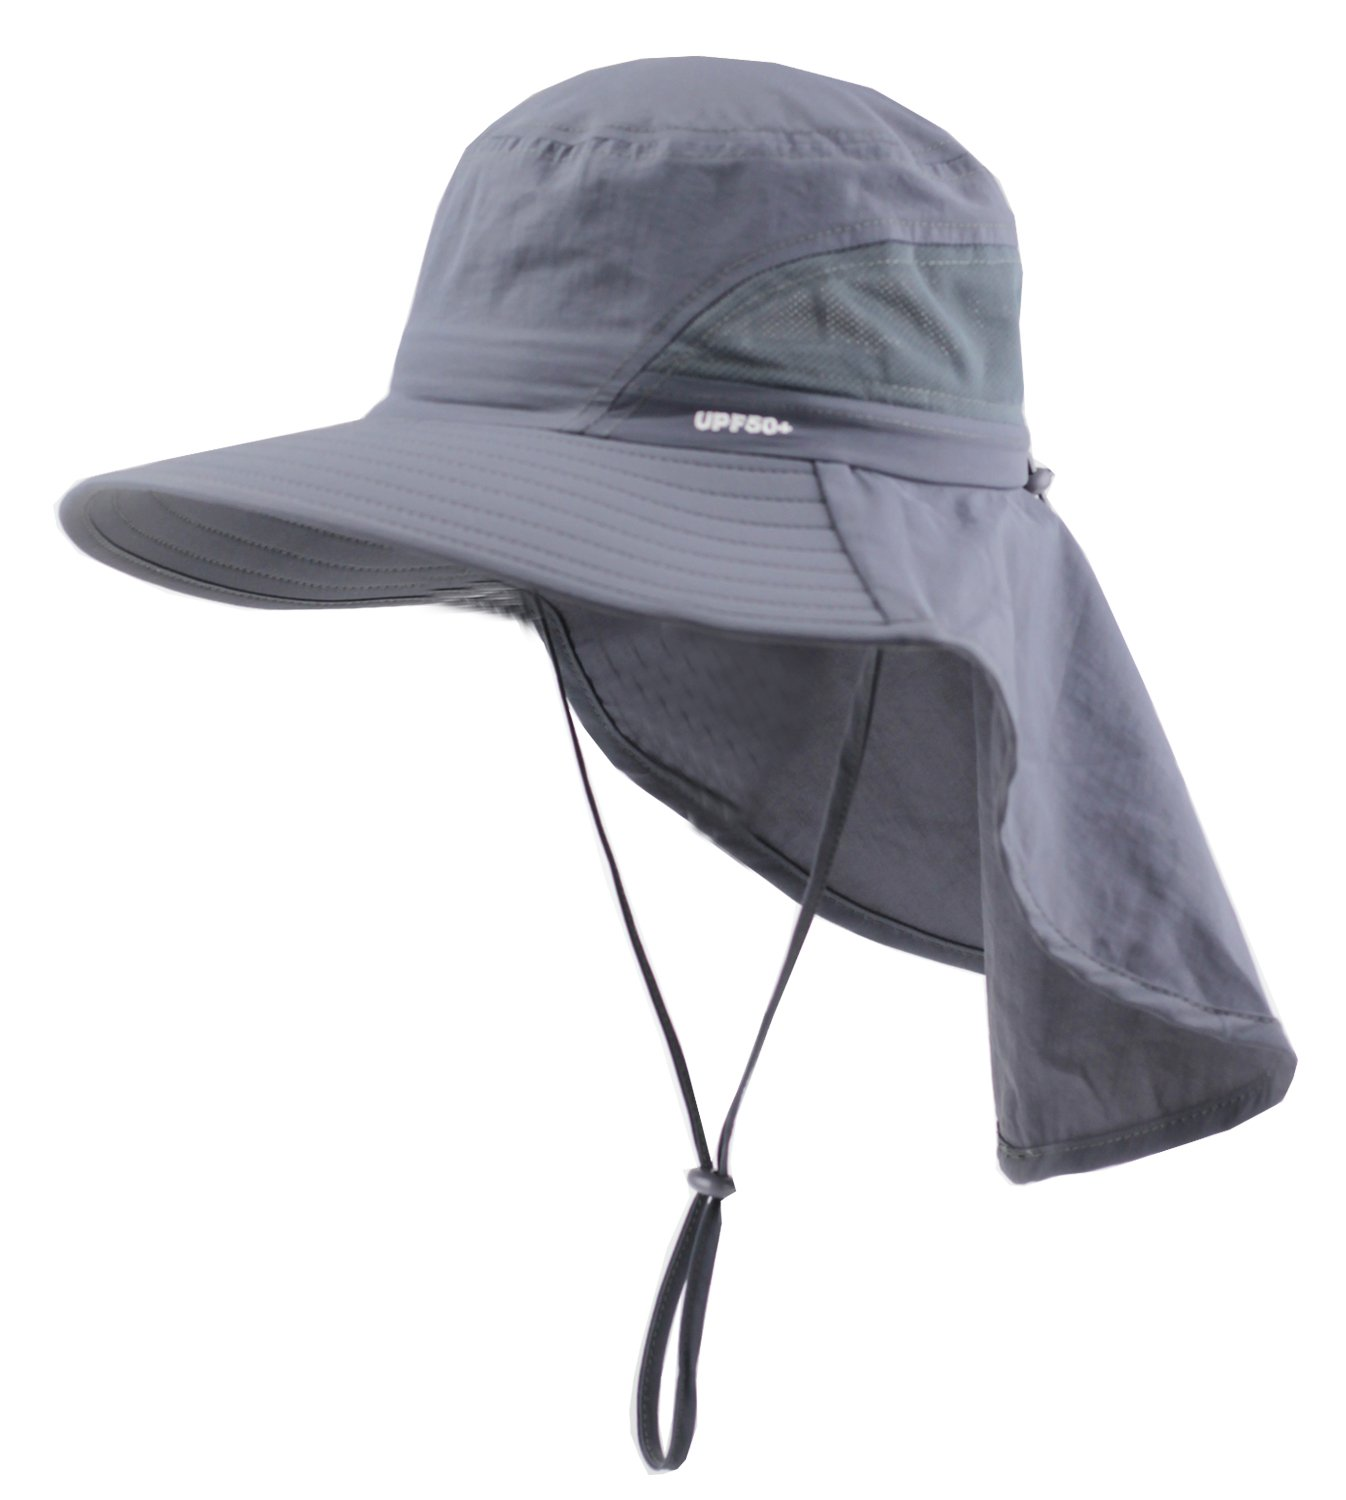 Child Sun Protection Cap Wide Brim Hat with Neck Flap UPF 50+ Kids (3T-7T)